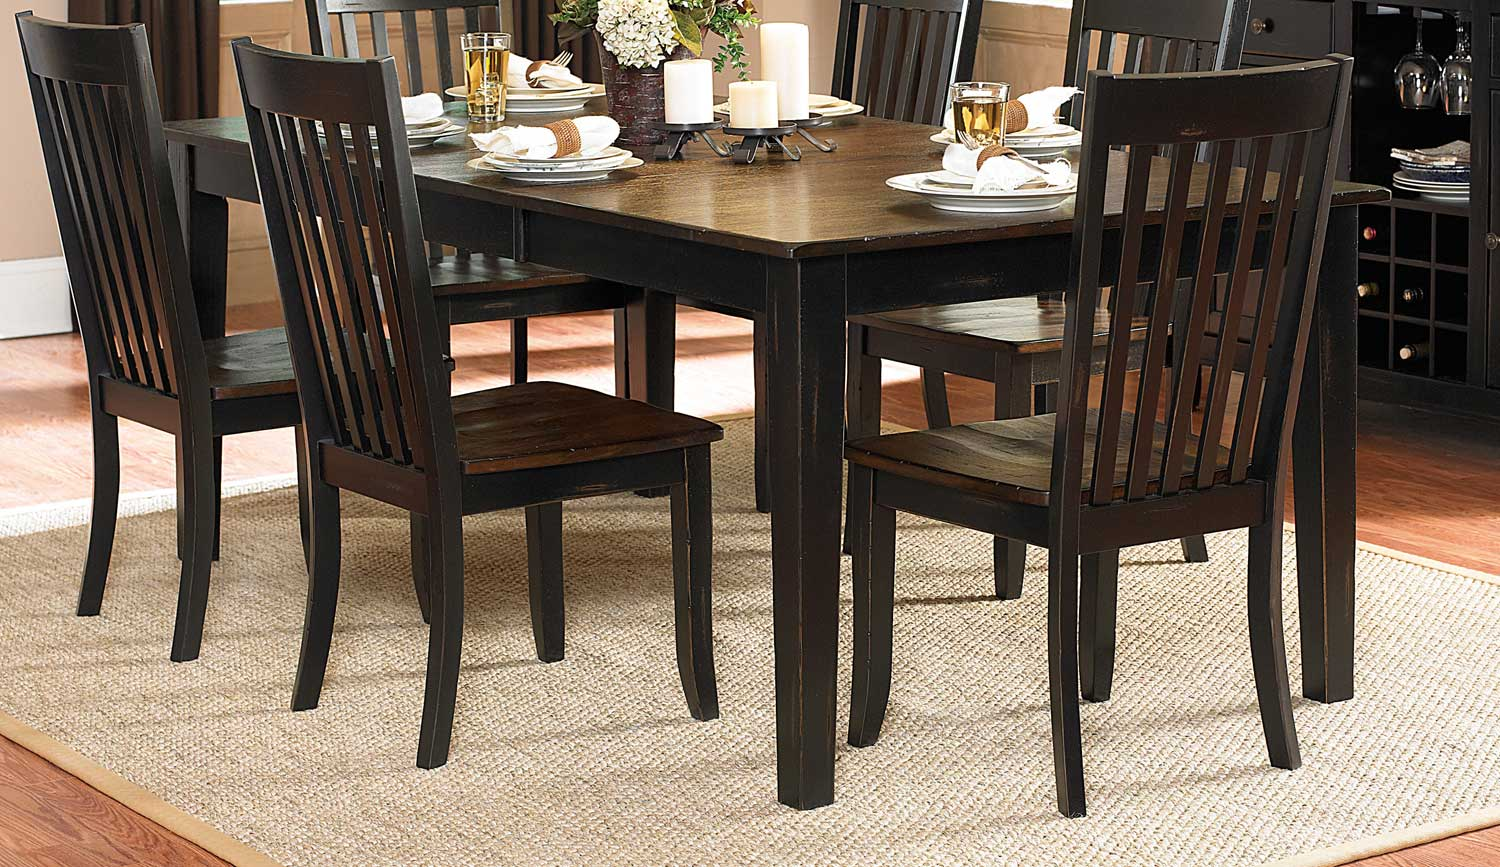 Homelegance Three Falls Rectangular Dining Table - Two Tone Dark Brown/Black Sand